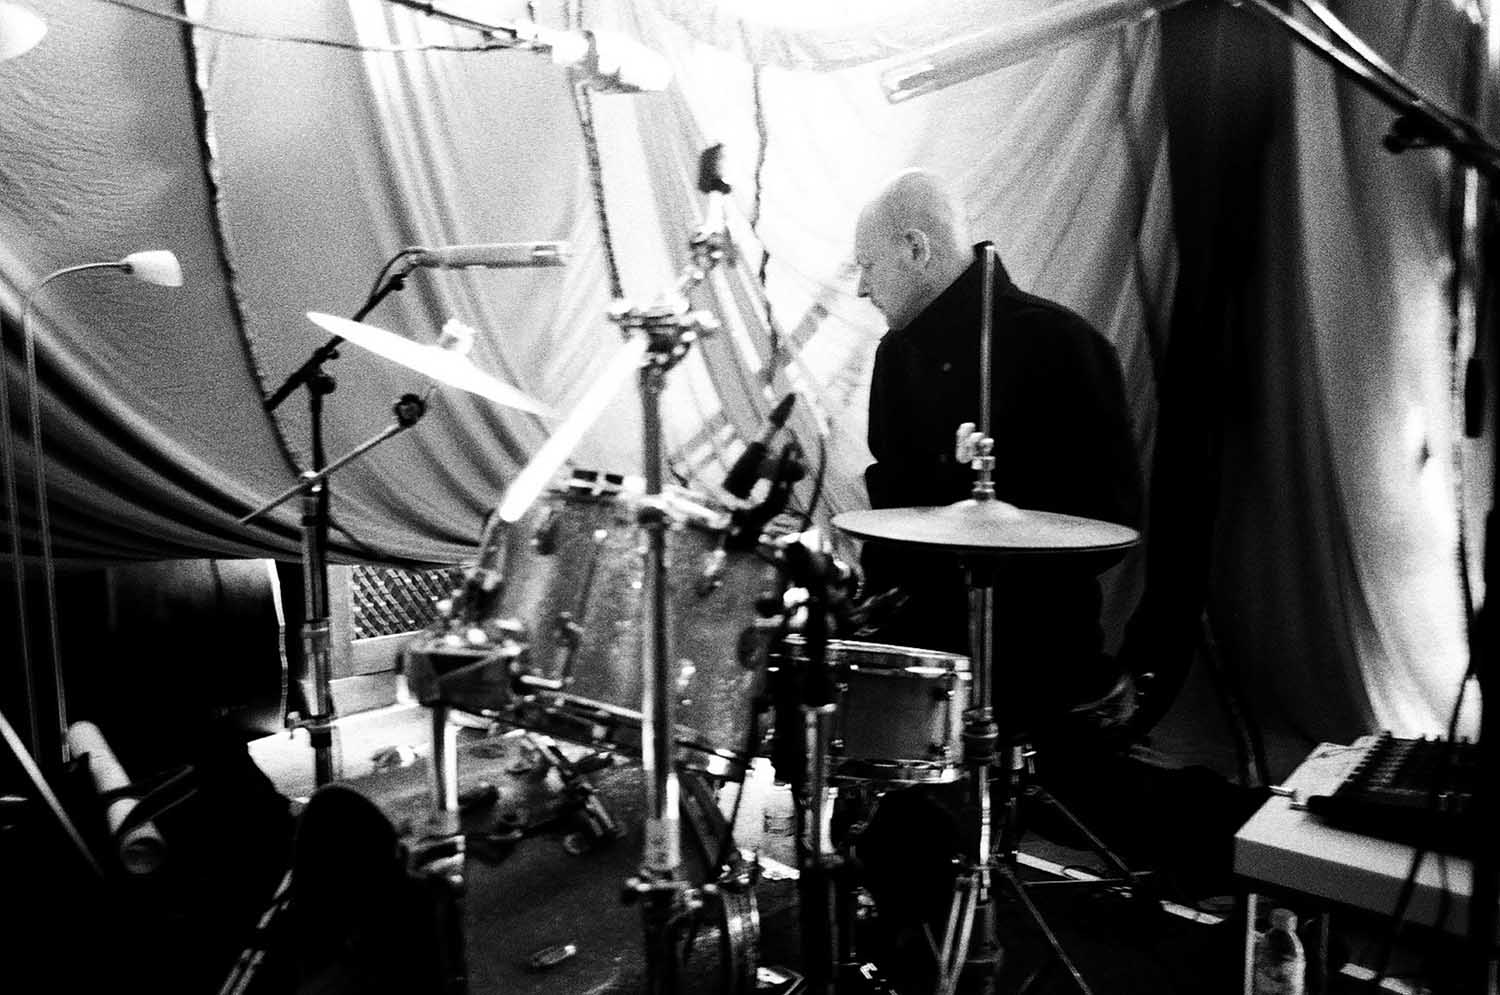 [Fotos] Phill Selway - Página 3 55124d1208049885-durms-used-phil-selway-drummer-radiohead-question-0057-copy